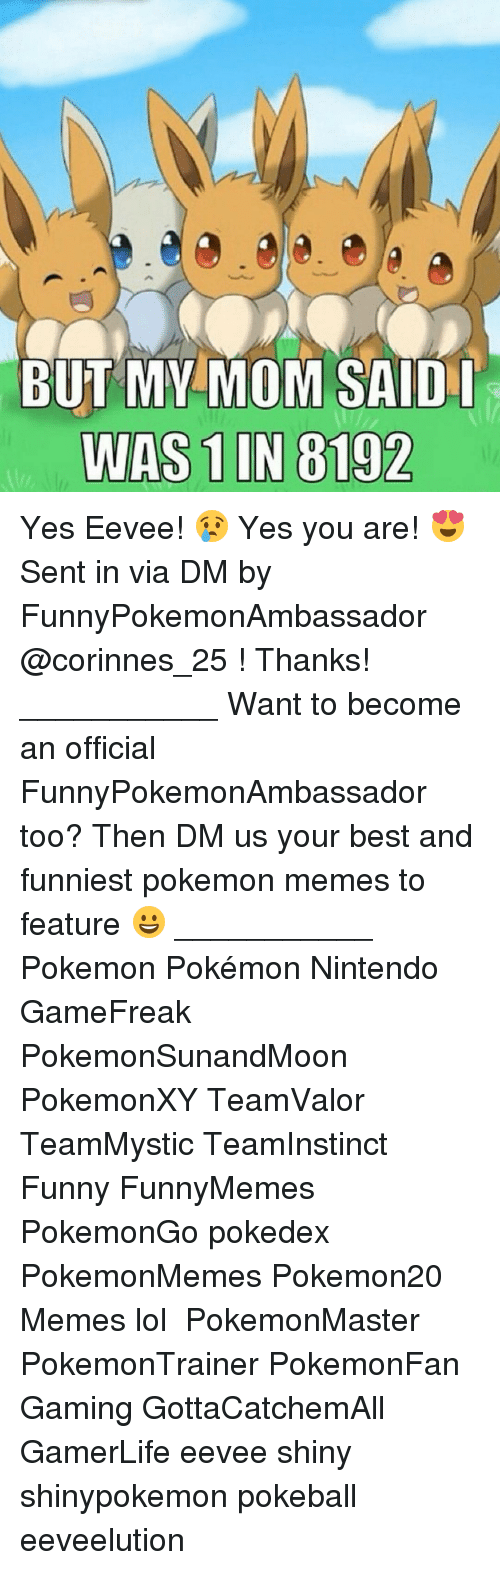 yes-you: BUT MY MOM SAID I  WAS 1 IN 8192 Yes Eevee! 😢 Yes you are! 😍 Sent in via DM by FunnyPokemonAmbassador @corinnes_25 ! Thanks! ___________ Want to become an official FunnyPokemonAmbassador too? Then DM us your best and funniest pokemon memes to feature 😀 ___________ Pokemon Pokémon Nintendo GameFreak PokemonSunandMoon PokemonXY TeamValor TeamMystic TeamInstinct Funny FunnyMemes PokemonGo pokedex PokemonMemes Pokemon20 Memes lol ポケットモンスター PokemonMaster PokemonTrainer PokemonFan Gaming GottaCatchemAll GamerLife eevee shiny shinypokemon pokeball eeveelution